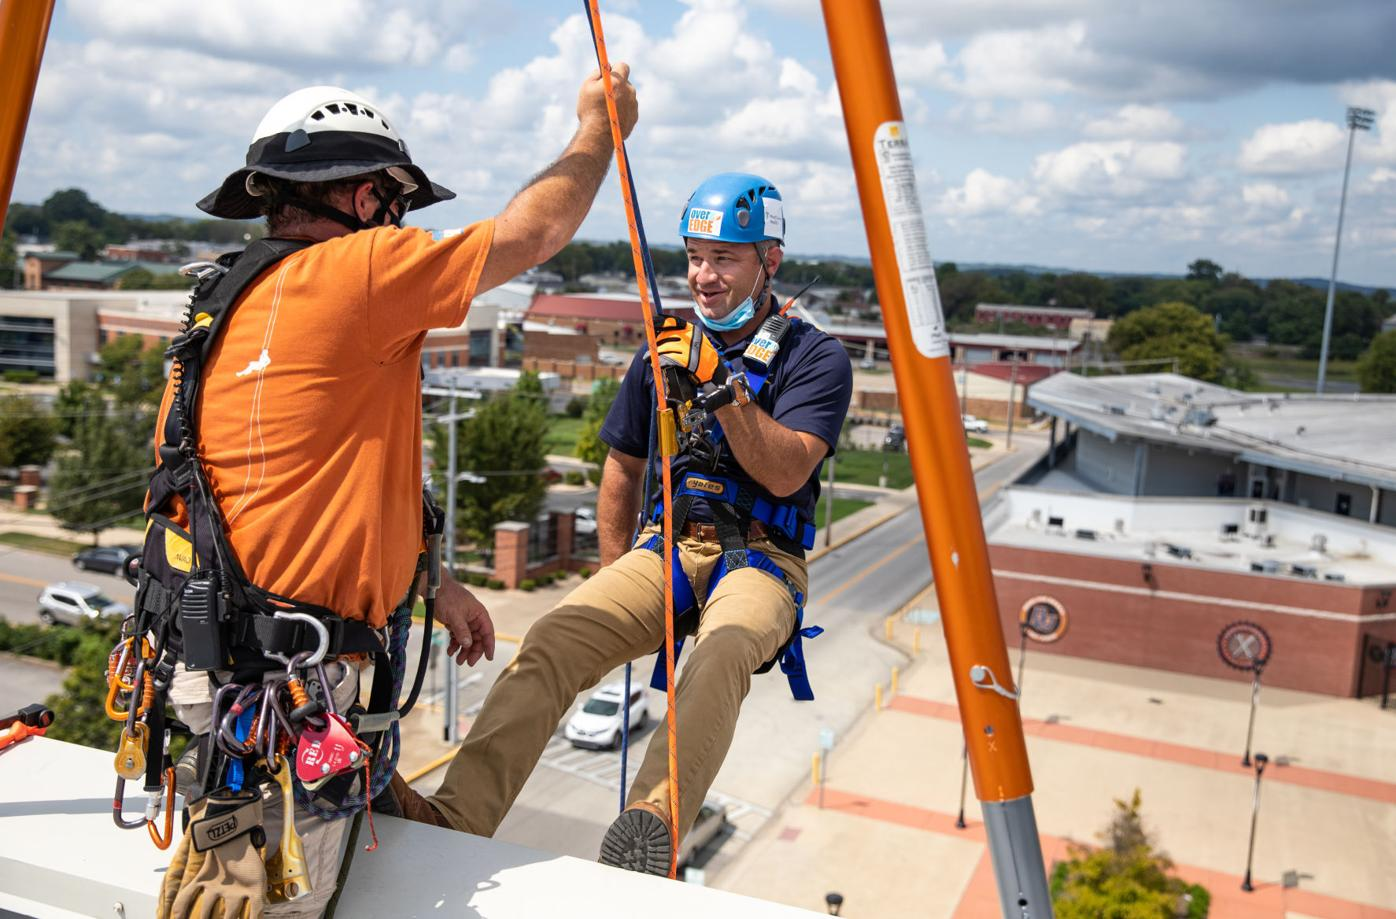 News_Overtheedge091320-1.jpg